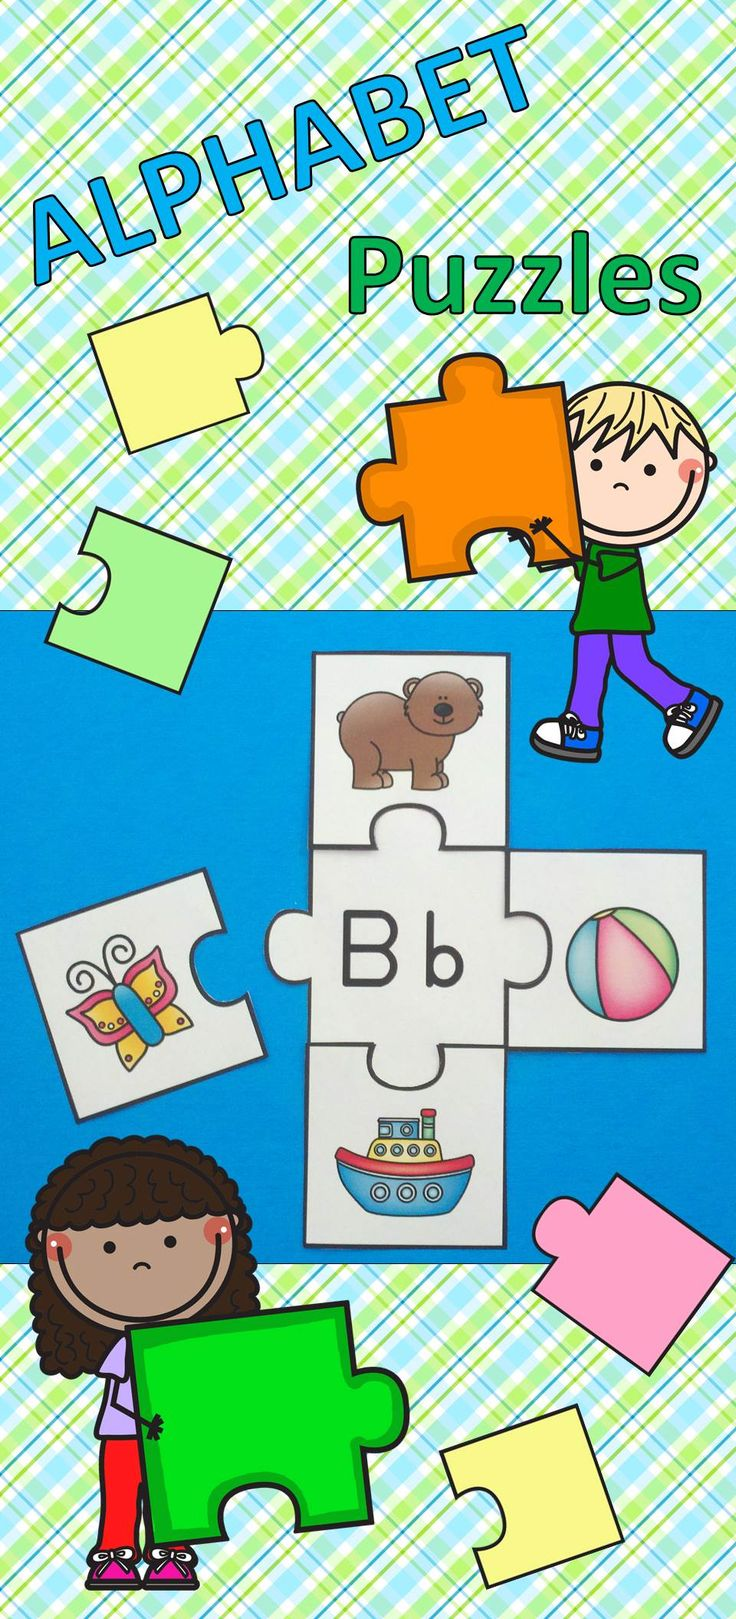 Phonics Fun for Your Little Learners!  Great for Morning Tubs, Early Finishers, Independent Practice, Literacy Centers, and Take Home Practice!  $   #alphabet  #puzzles  #beginningsounds #literacycenters  https://www.teacherspayteachers.com/Product/Alphabet-Puzzles-5-Piece-Puzzles-1814748